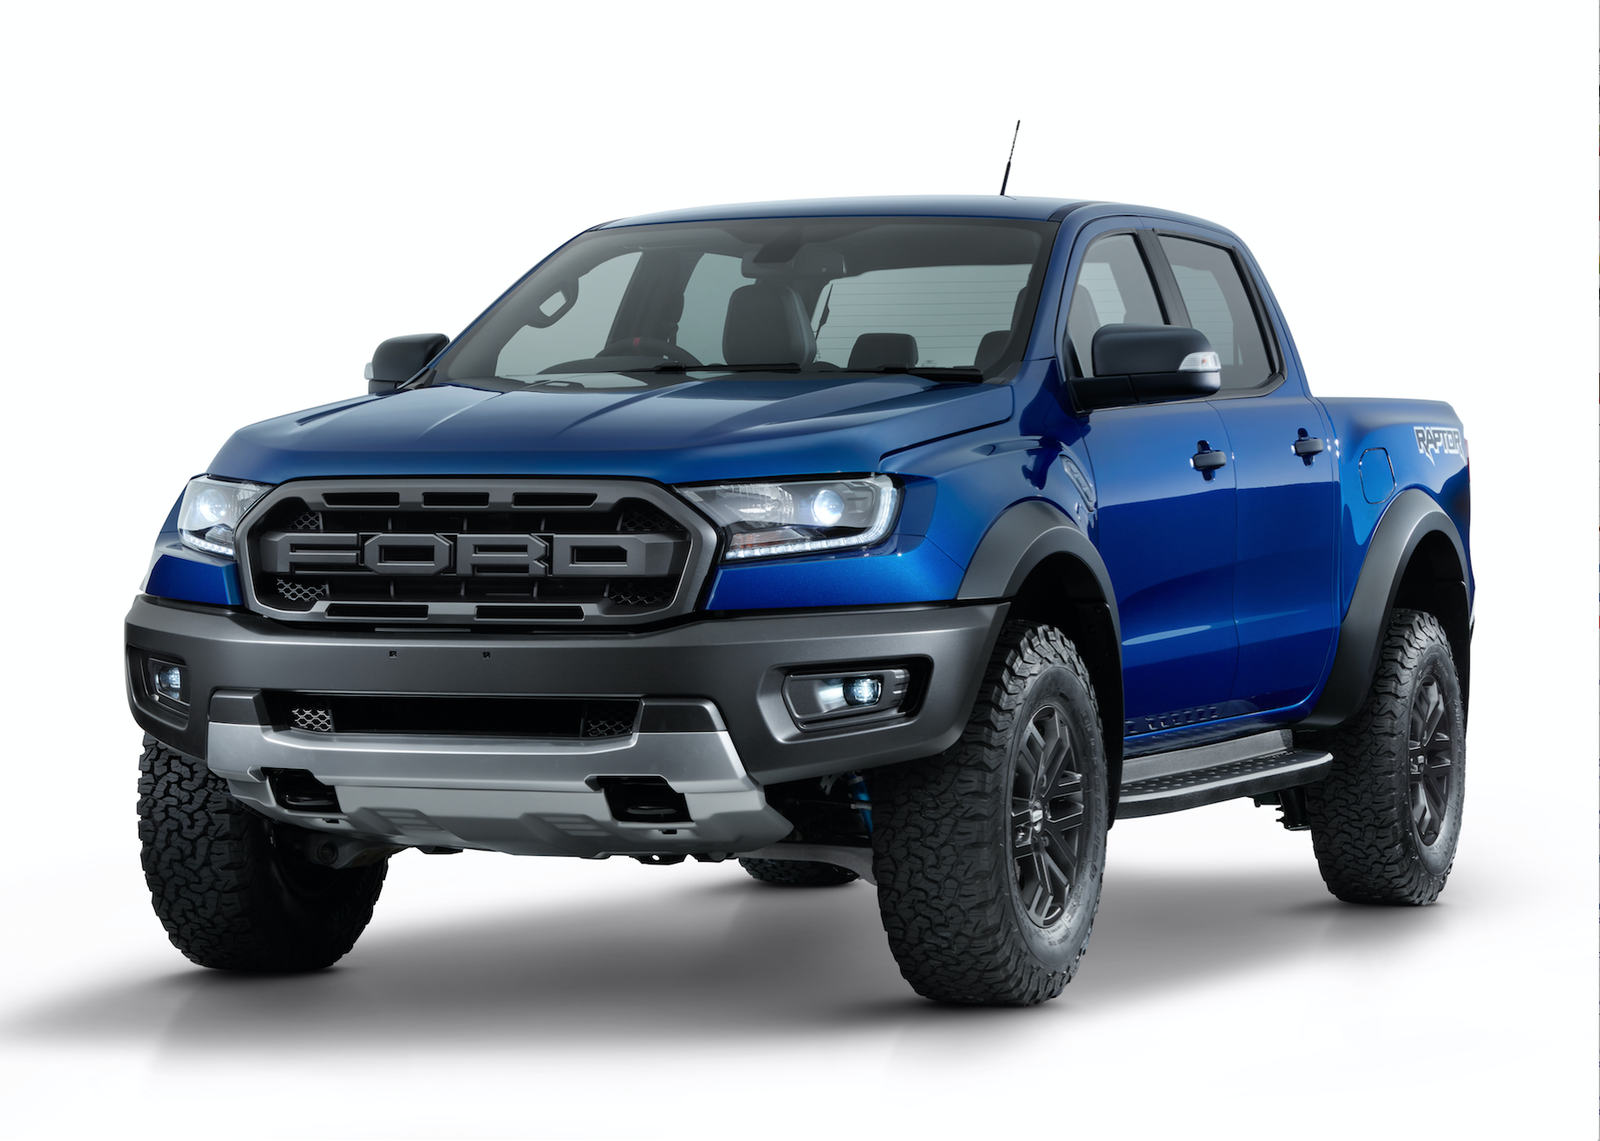 2019 Ford Ranger Raptor This Is It Artstrada Magazine Ford